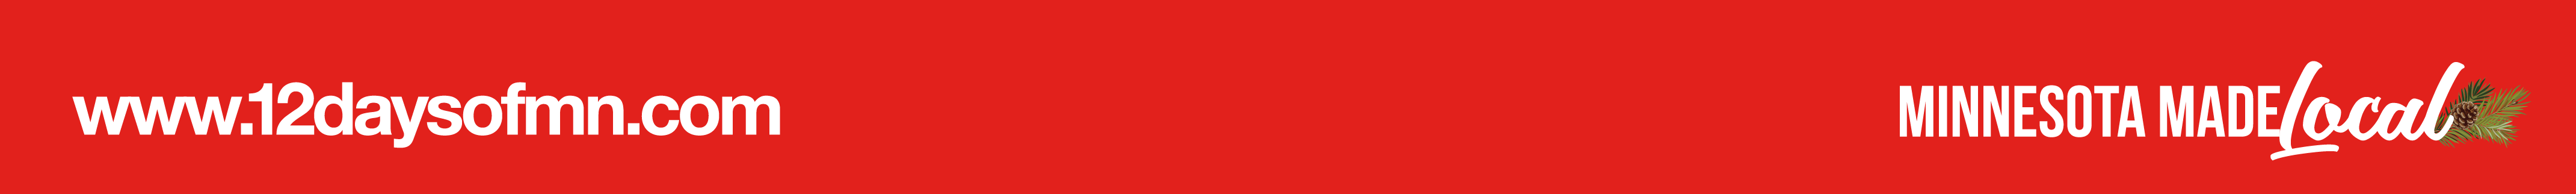 Top-Red-Bar.png